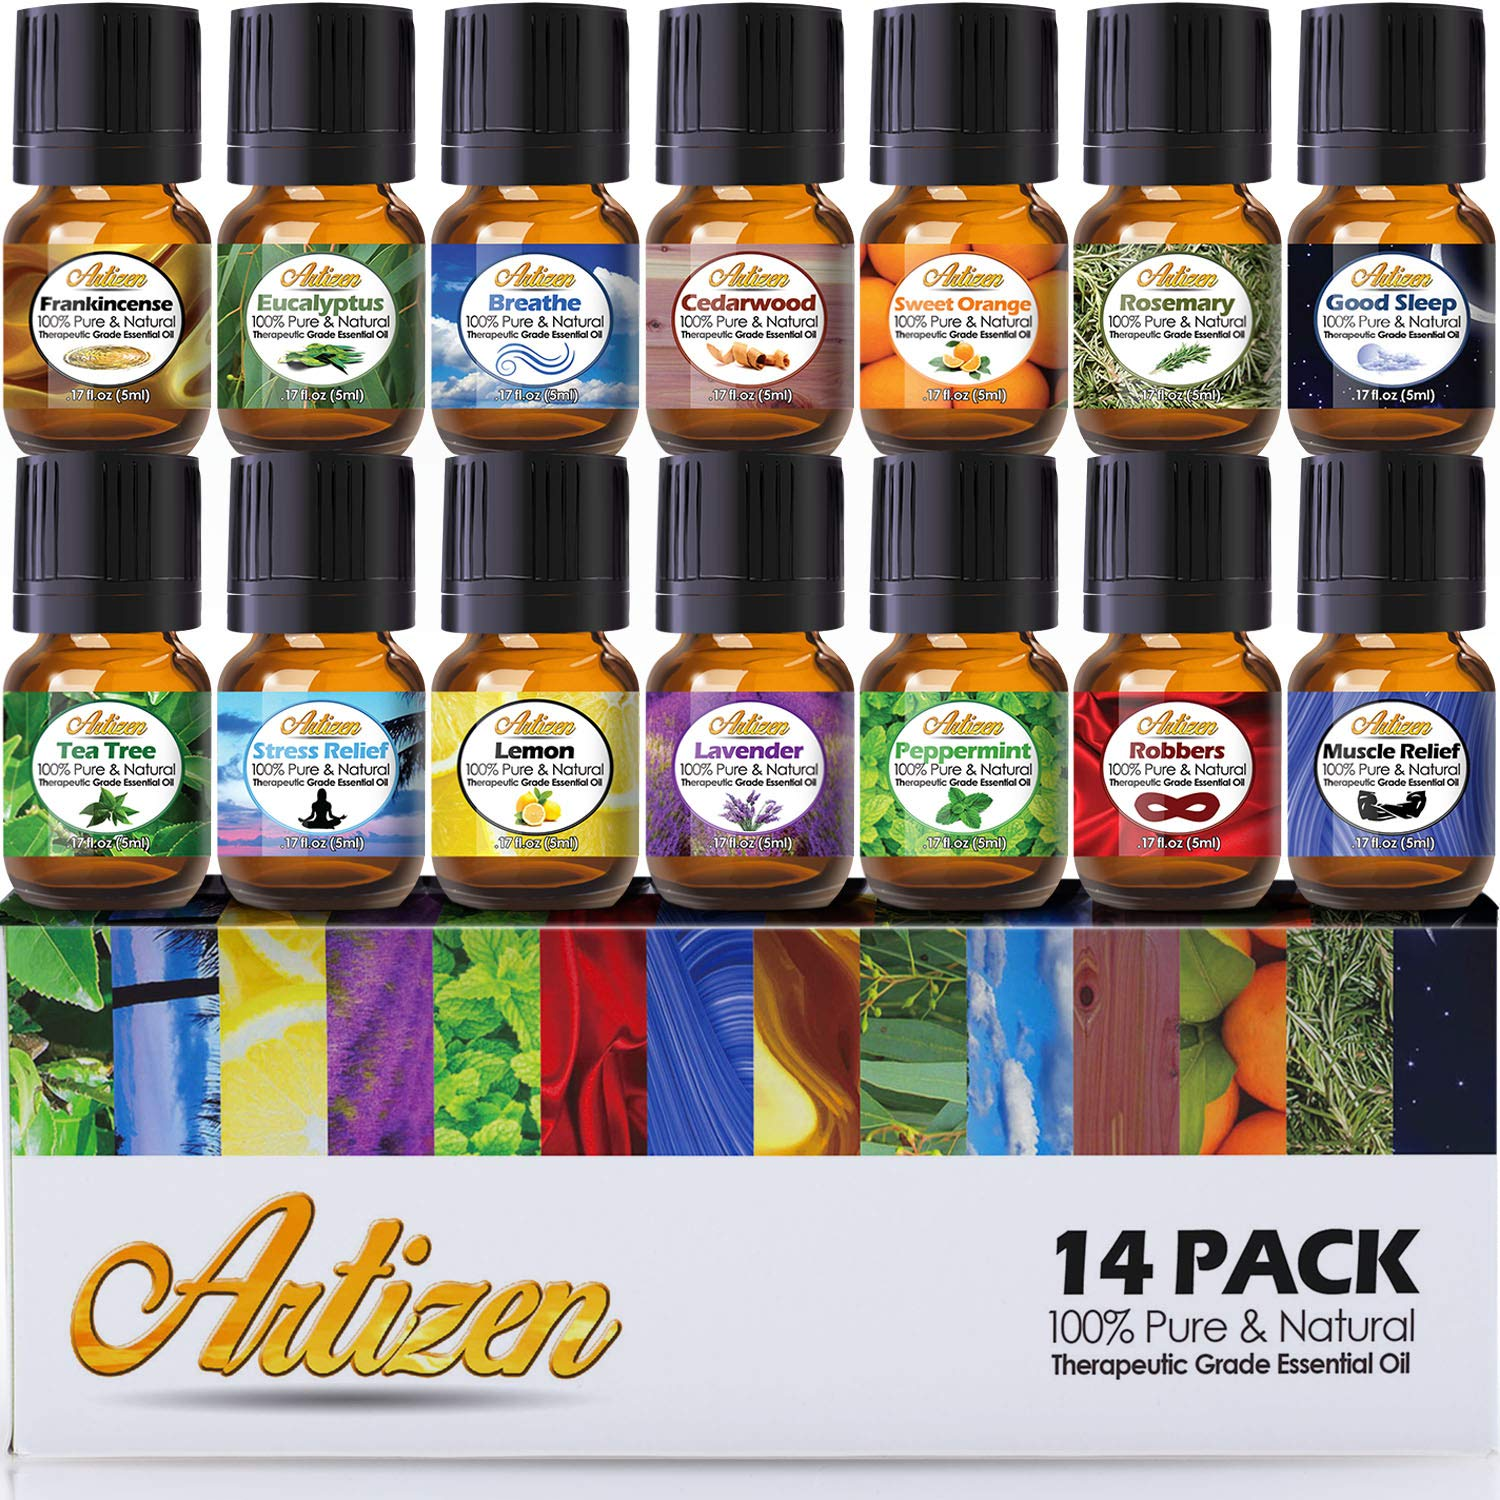 Artizen Aromatherapy Top 14 Essential Oil Set (100% PURE & NATURAL) Therapeutic Grade Essential Oils - All of Our Most Popular Scents and Best Essential Oil Blends essential oils ESSENTIAL OILS – THE BEST PICKS FOR A GOOD HEALTH AND SLEEP HELP 81KE 2B1FYDDL